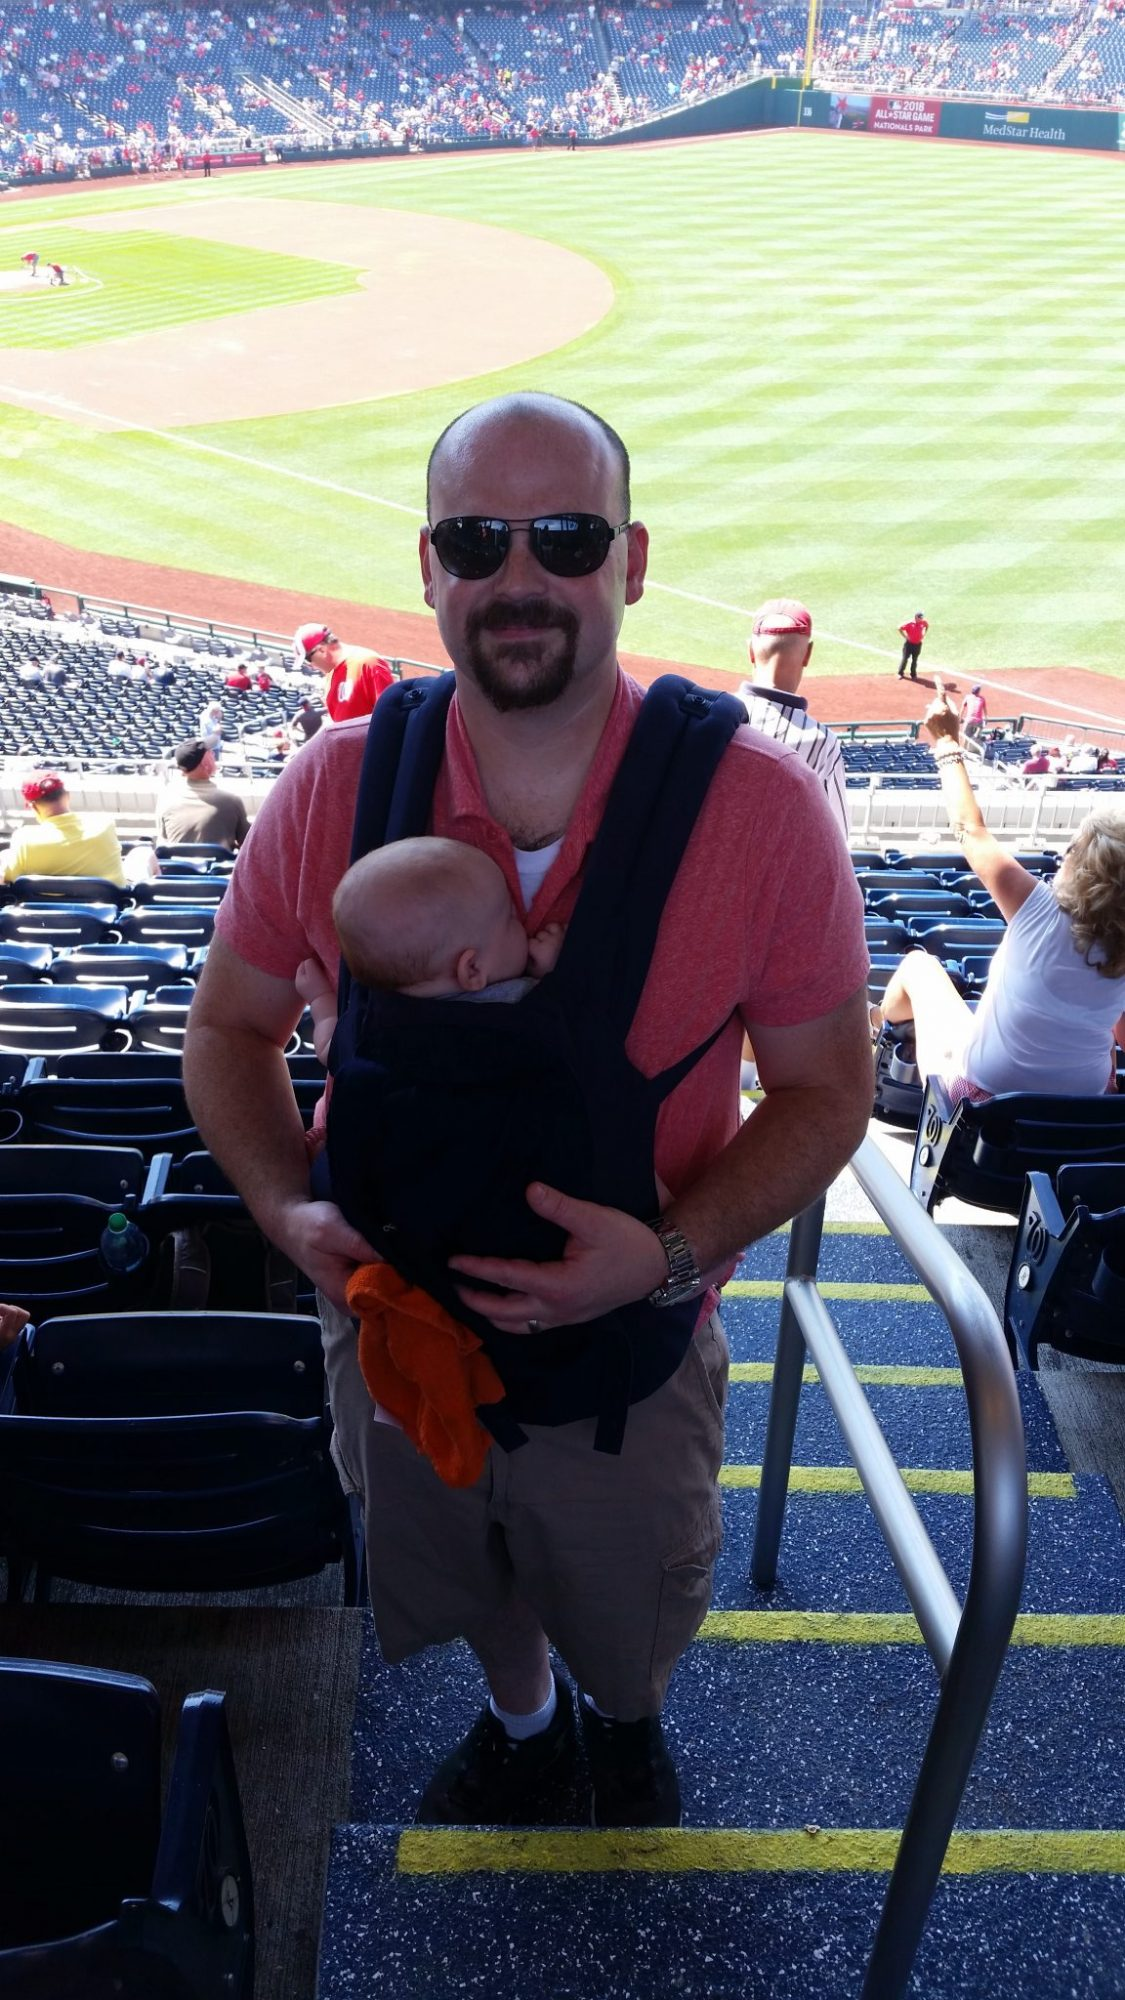 ergobaby review, ergobaby carrier review, which carrier should i buy, best baby carrier, babywearing for new moms, how to babywear, dads who babywear